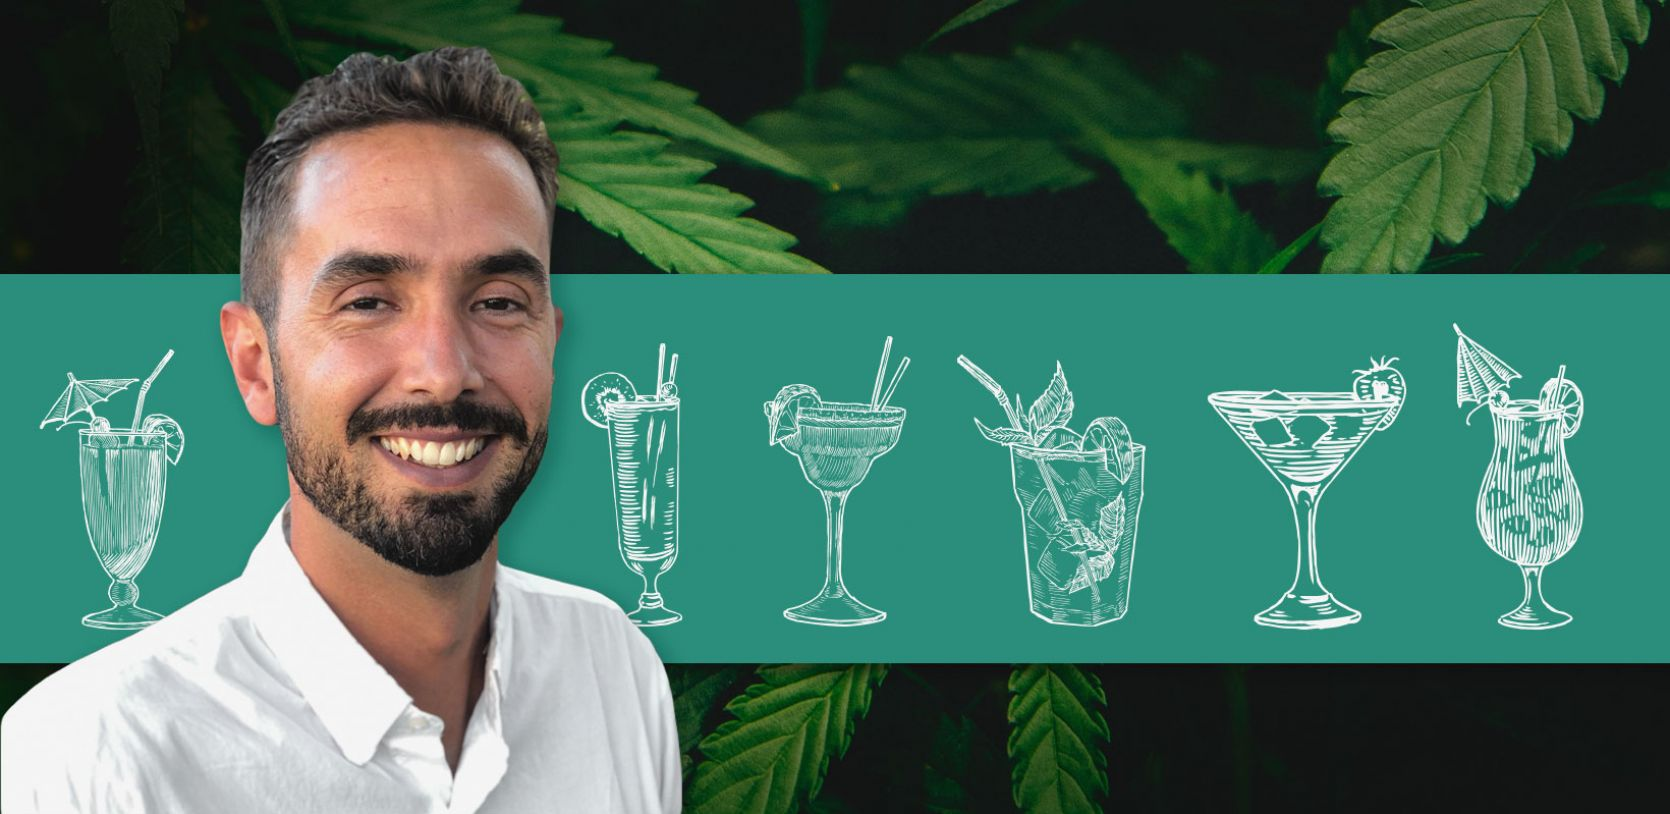 Photo for: Why This Legendary Brewmaster Took His Talent to Cannabis Beverages